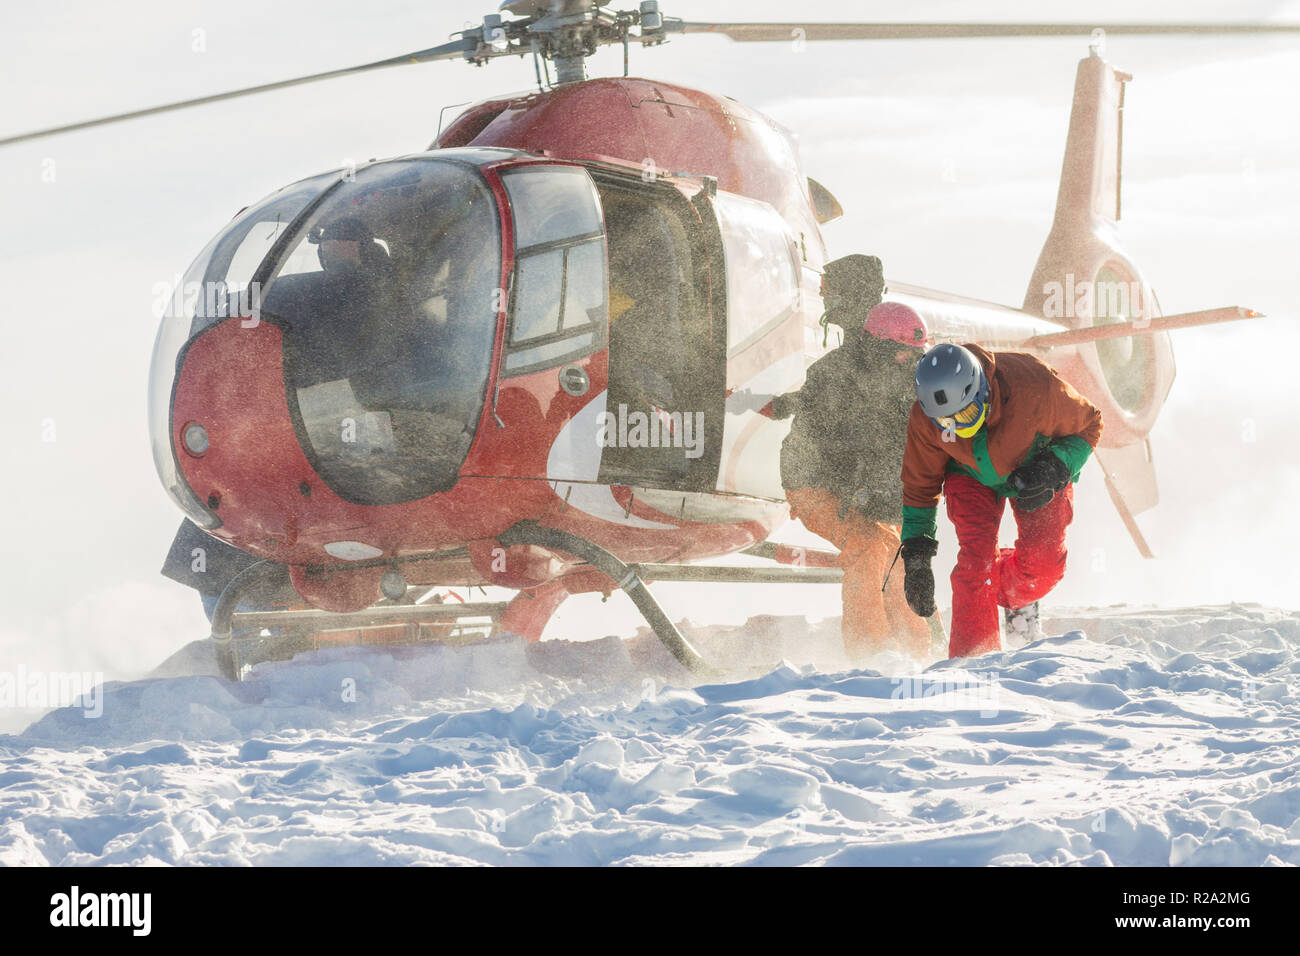 Landing people from a helicopter, freeriders snowboarders on the mountain - Stock Image